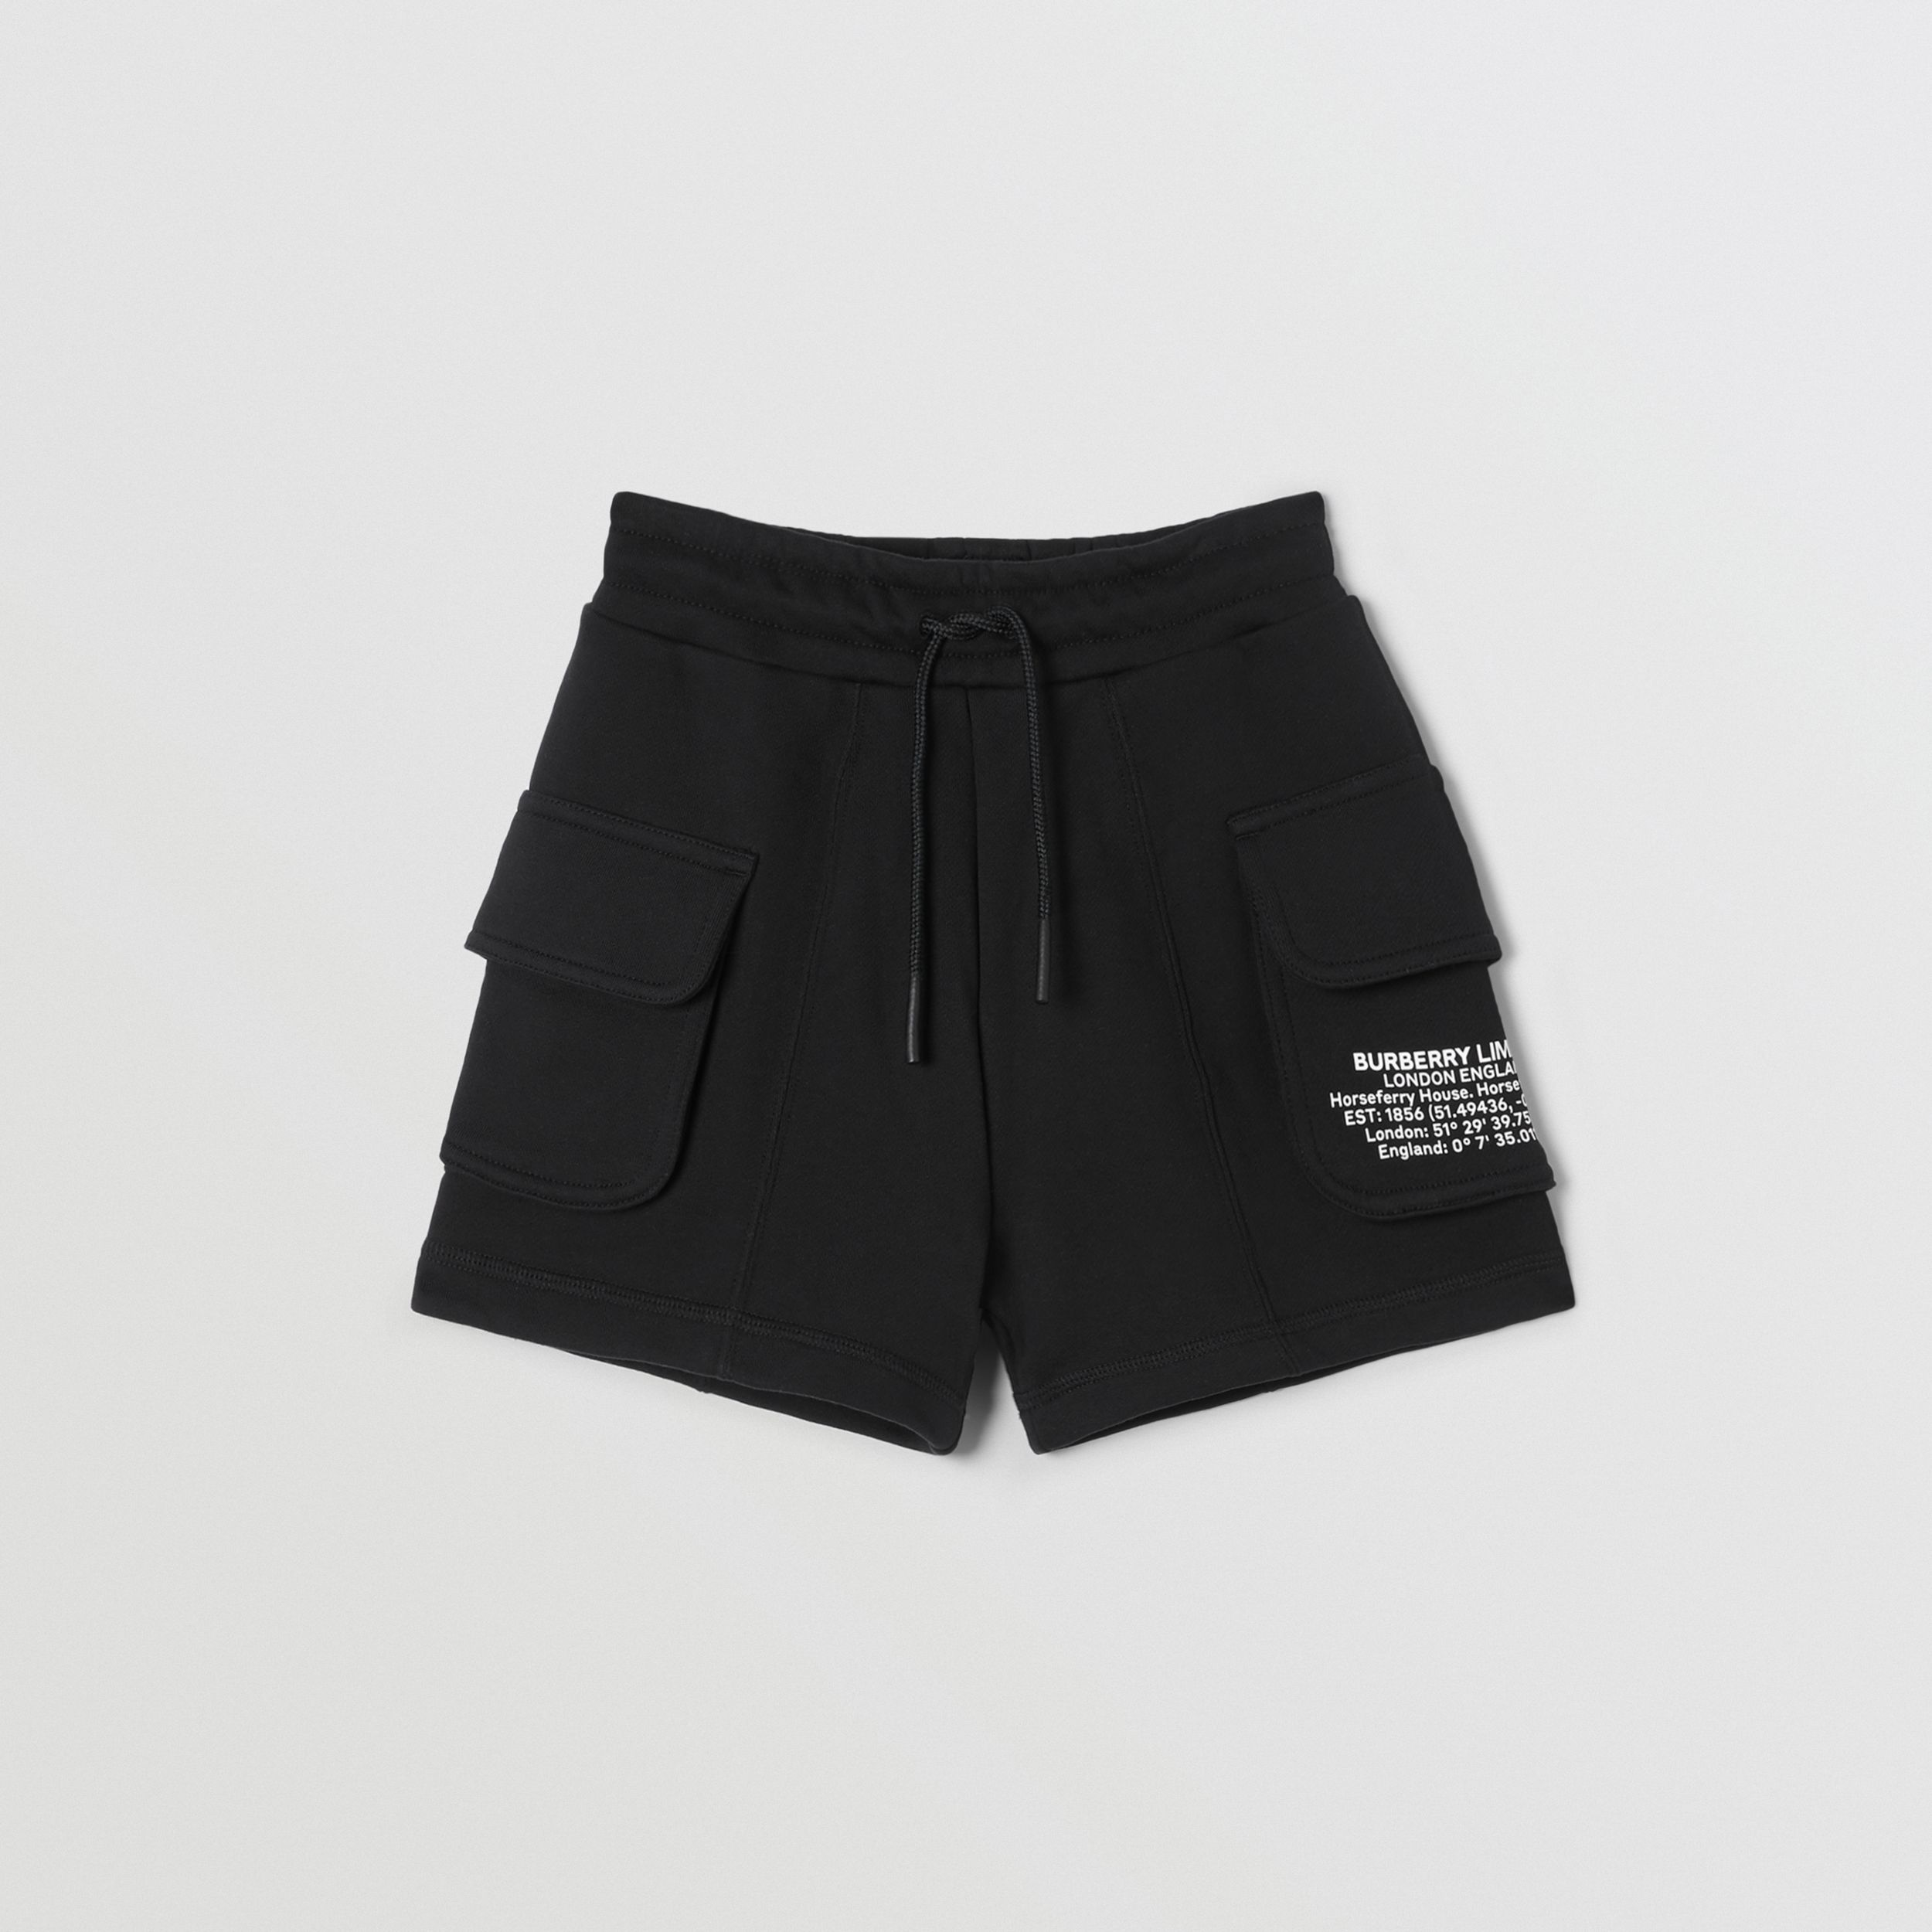 Location Print Cotton Drawcord Shorts in Black | Burberry - 1